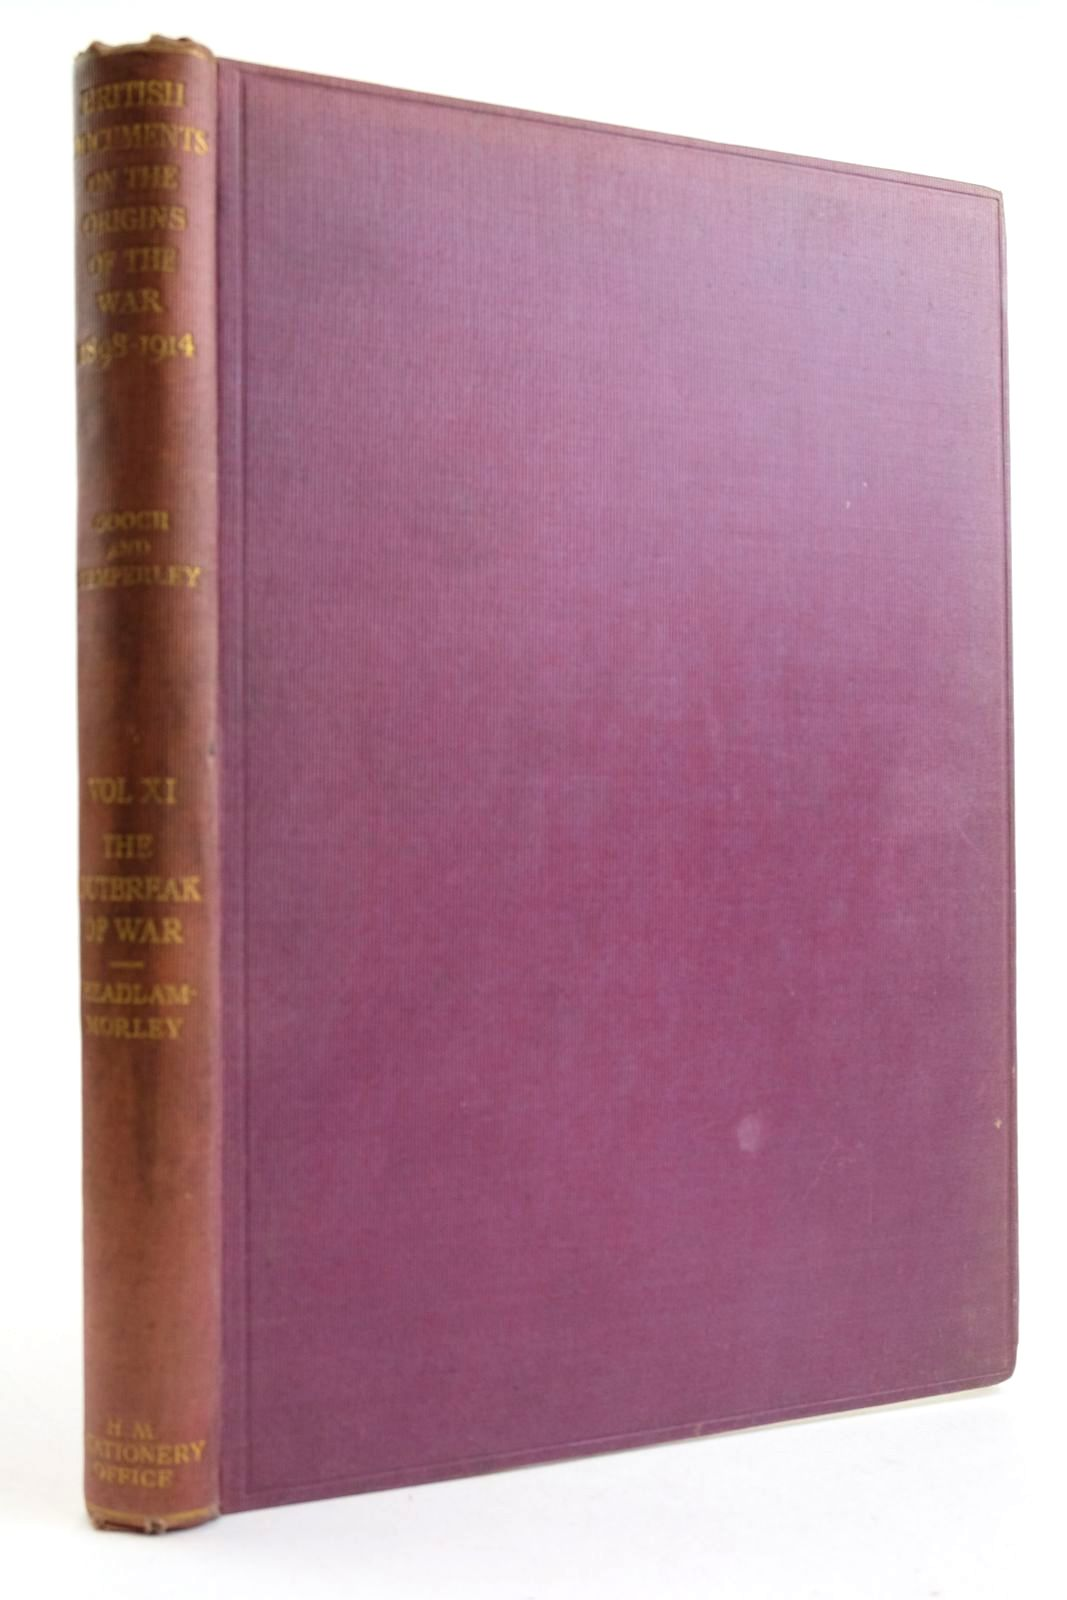 Photo of BRITISH DOCUMENTS ON THE ORIGINS OF WAR 1898-1914 VOL. XI- Stock Number: 2133253